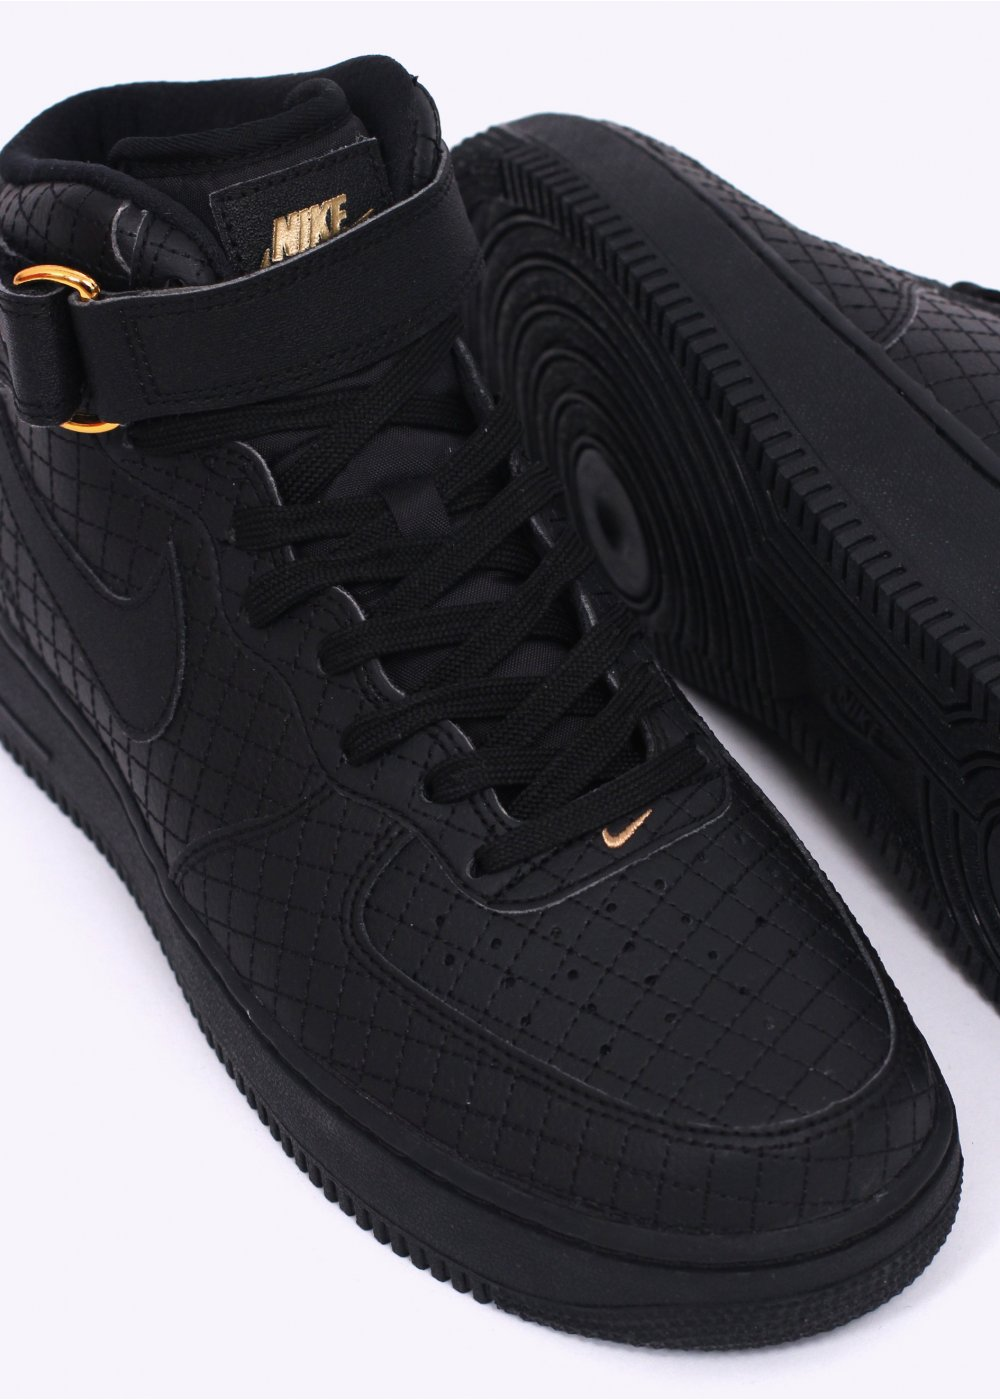 Air Force 1 Mid Black Gold